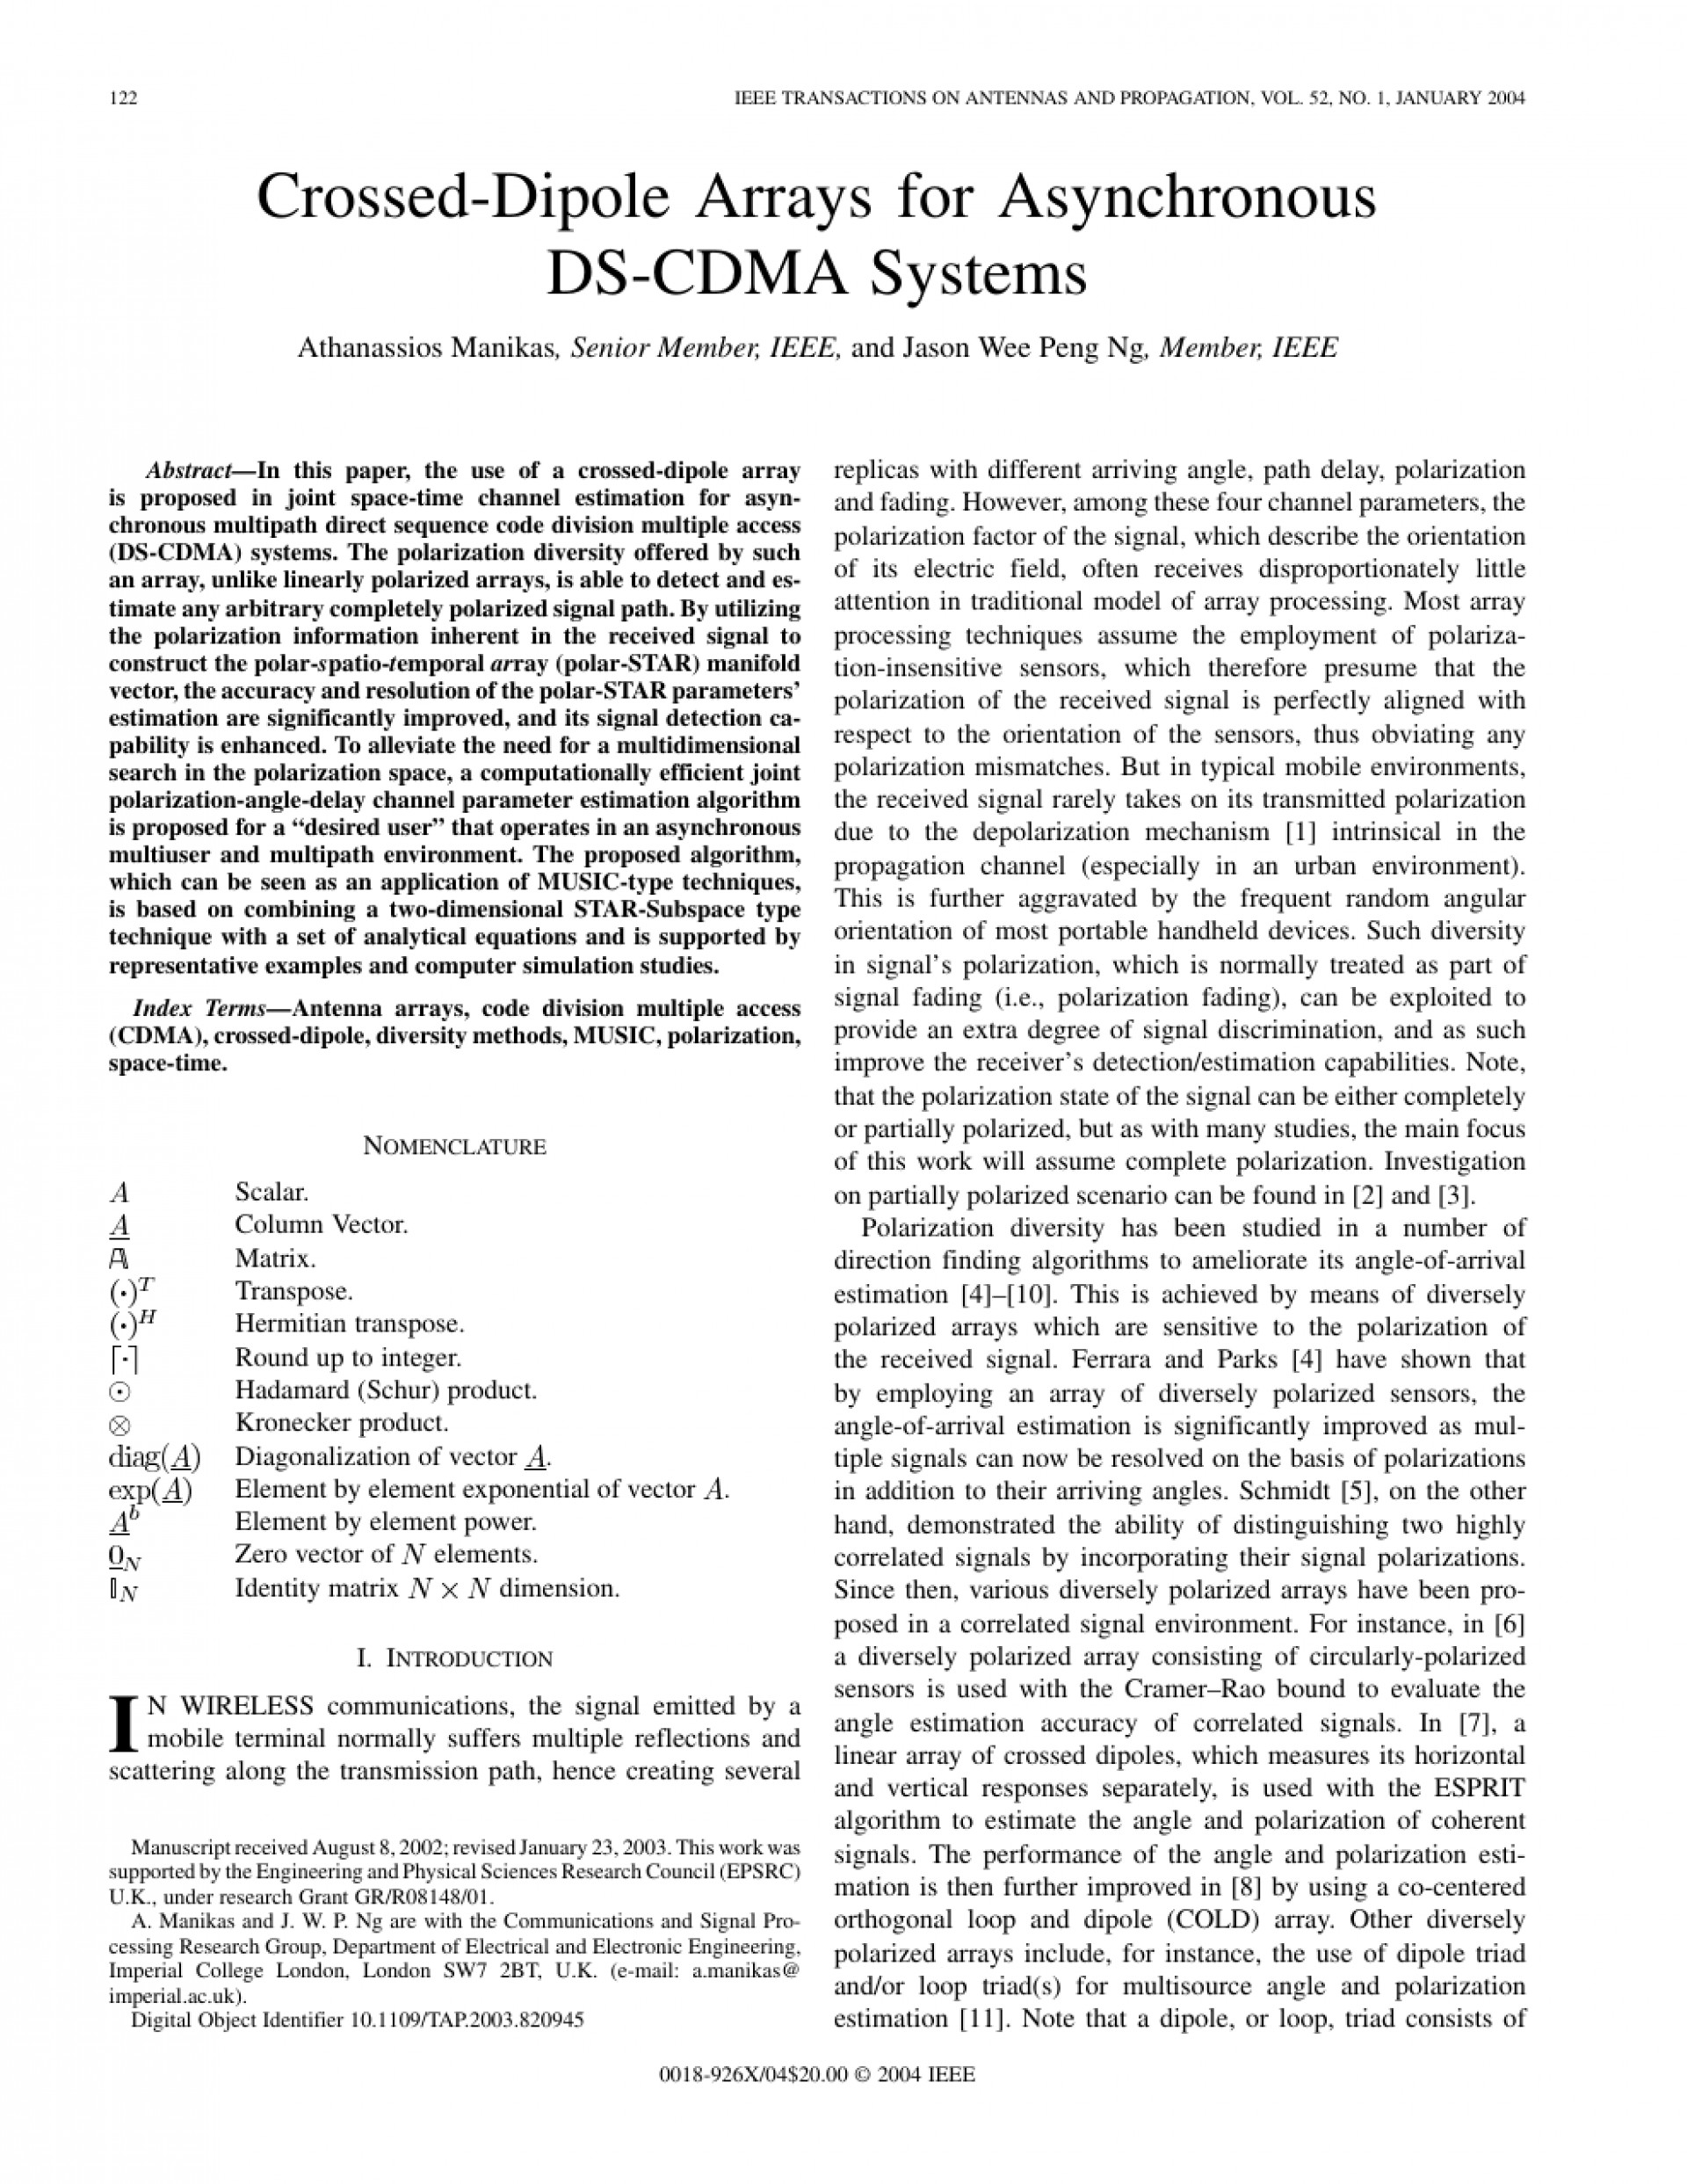 004 Ieee Research Papers In Computer Science Pdf Paper Phenomenal 1920